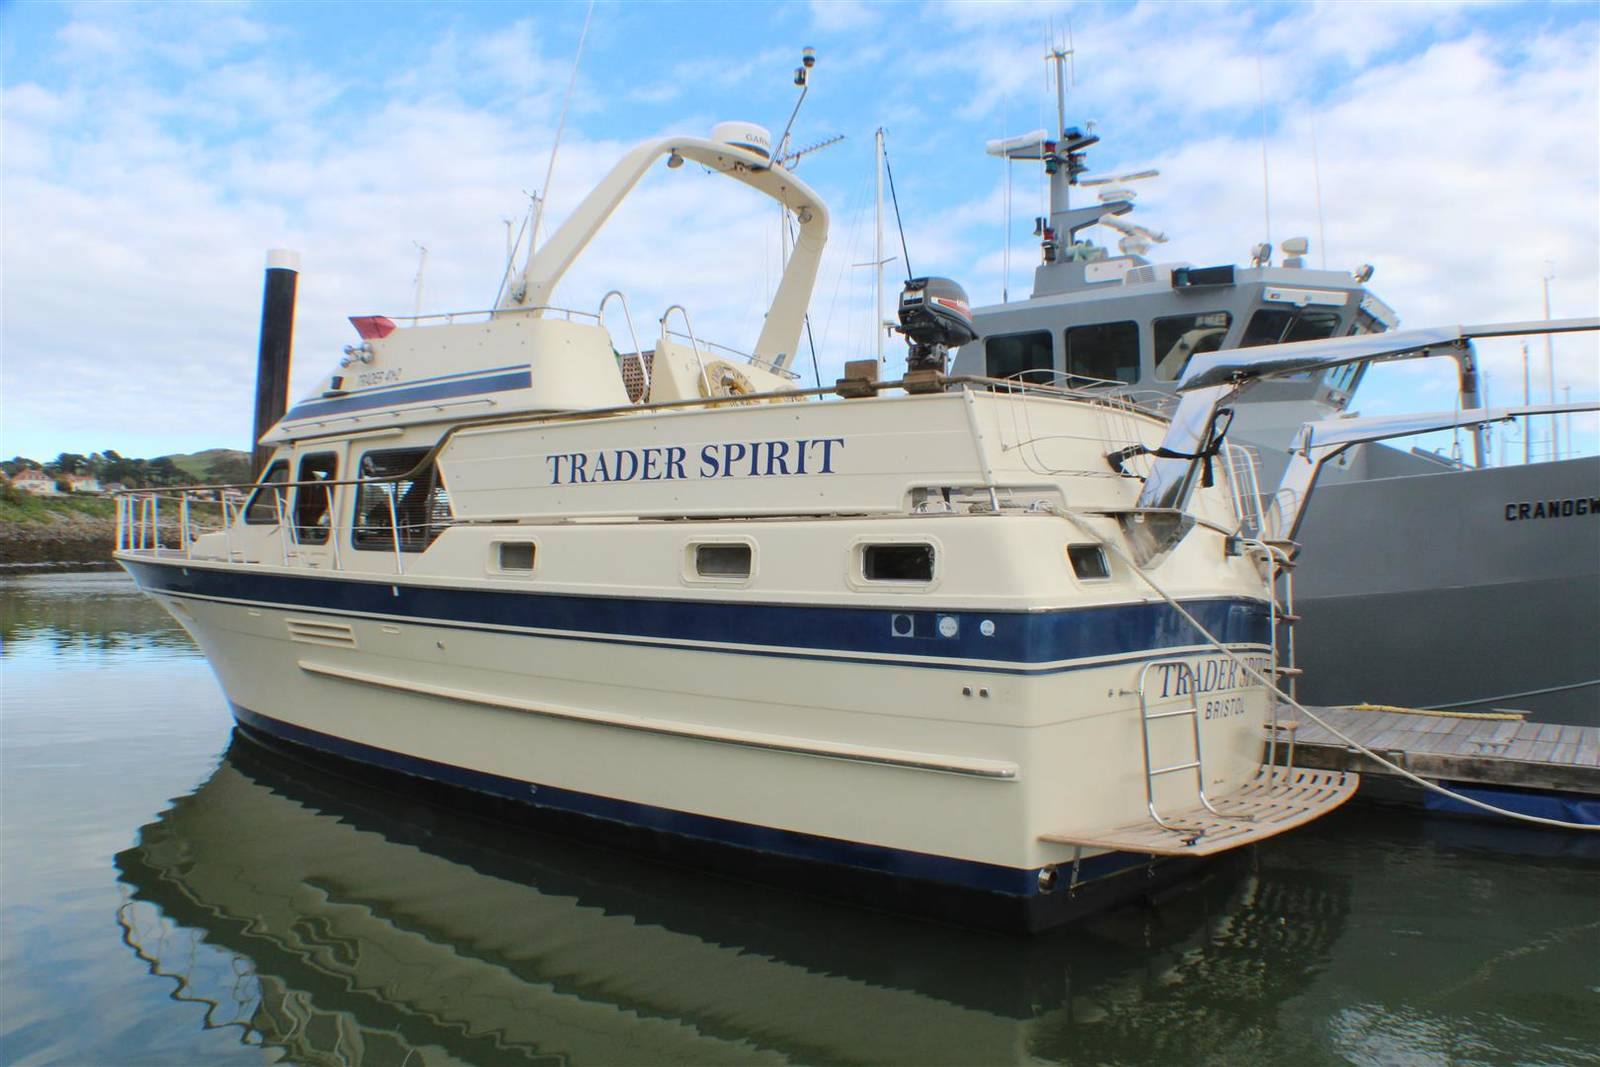 Trader 41+2 1987 Yacht Boat For Sale in Conwy Marina, North